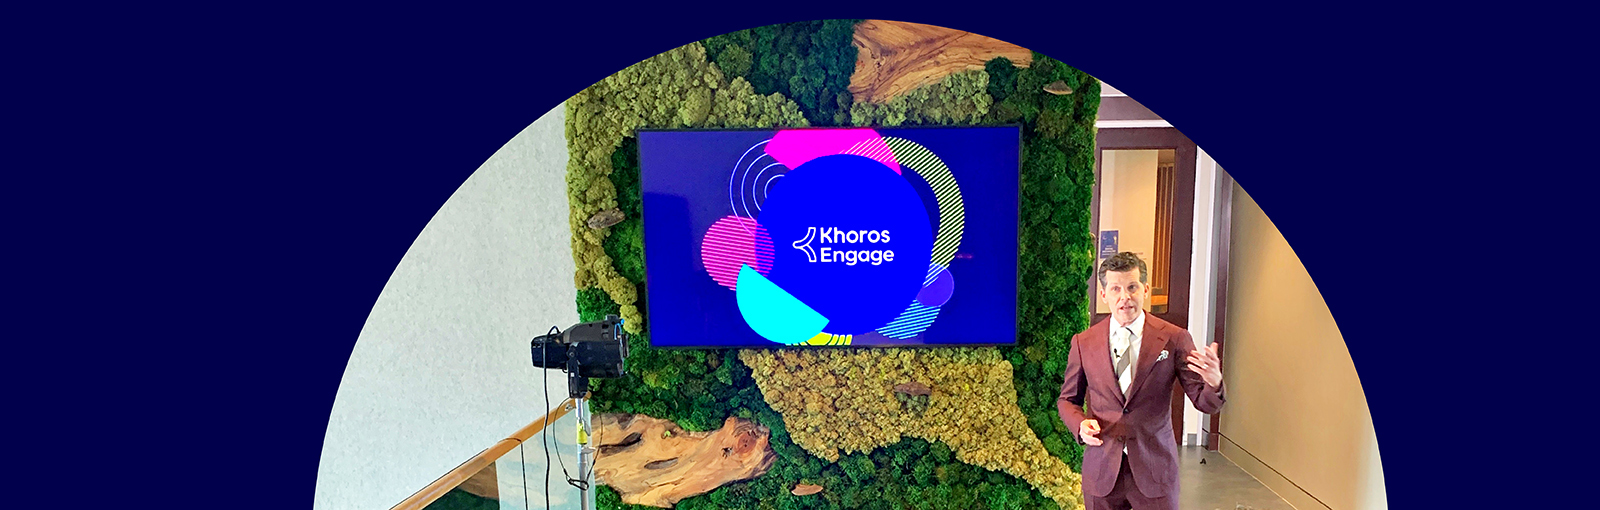 5 tips for combining digital events and brand-owned communities: How Khoros Engage did it successfully